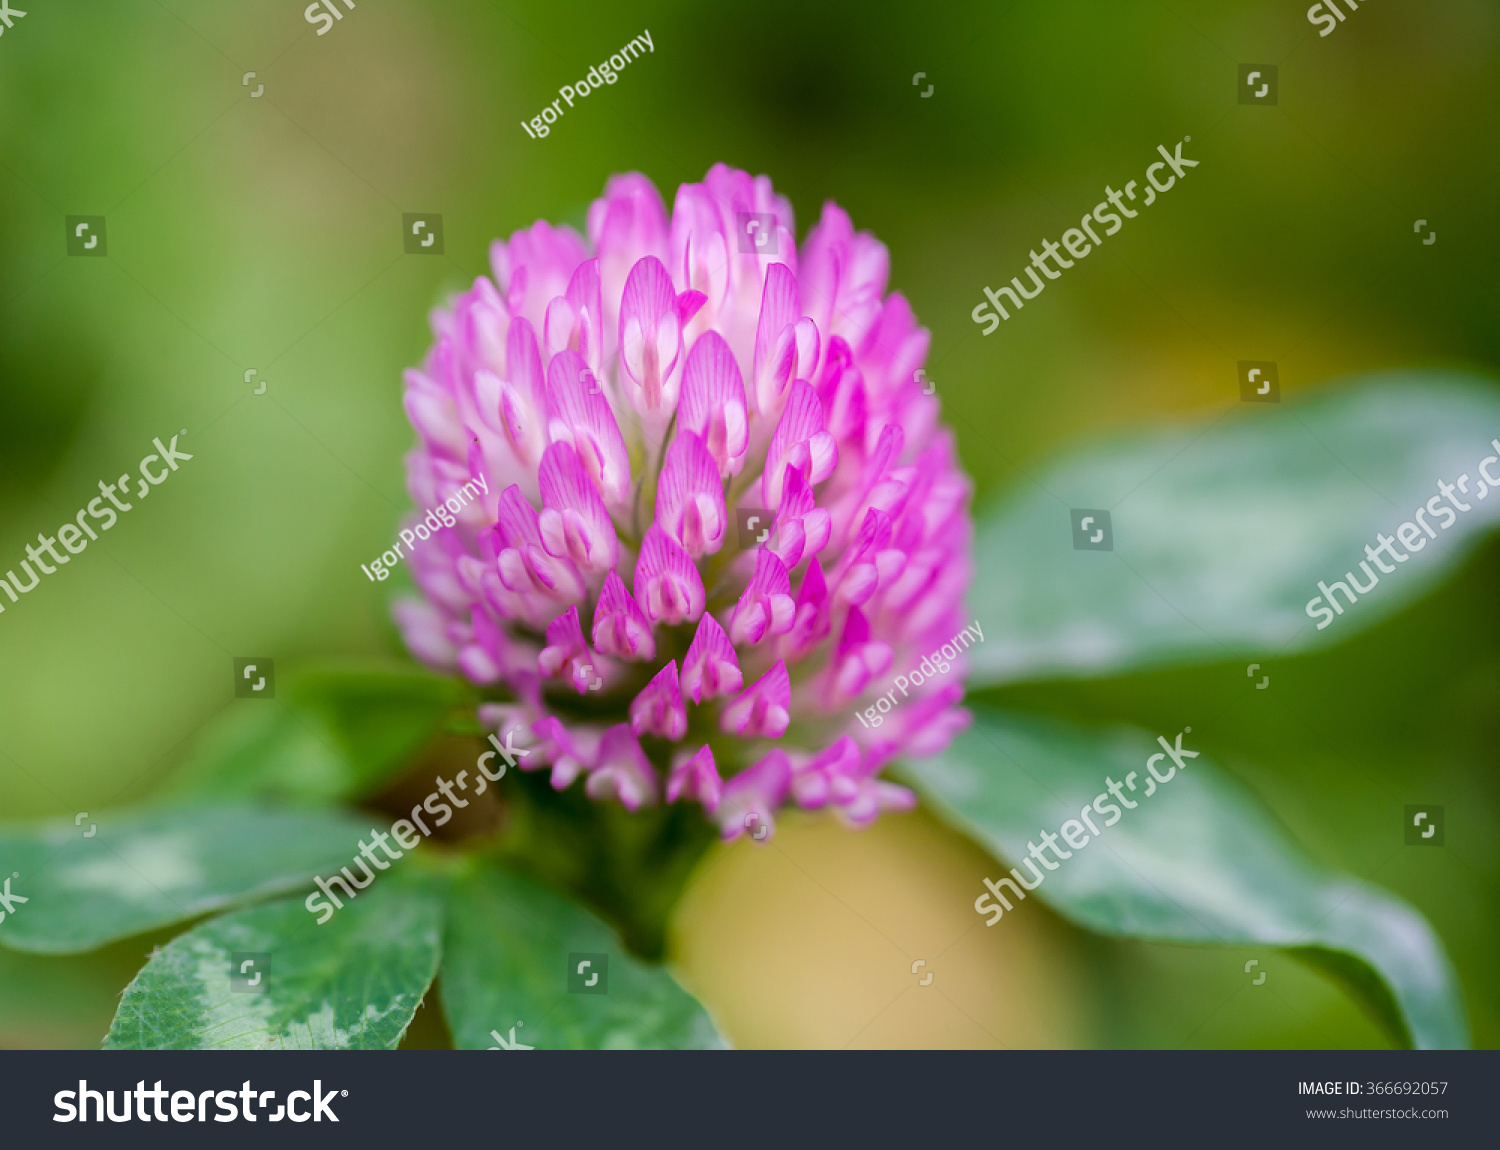 Purple Clover Flower Green Leaves Stock Photo Safe To Use